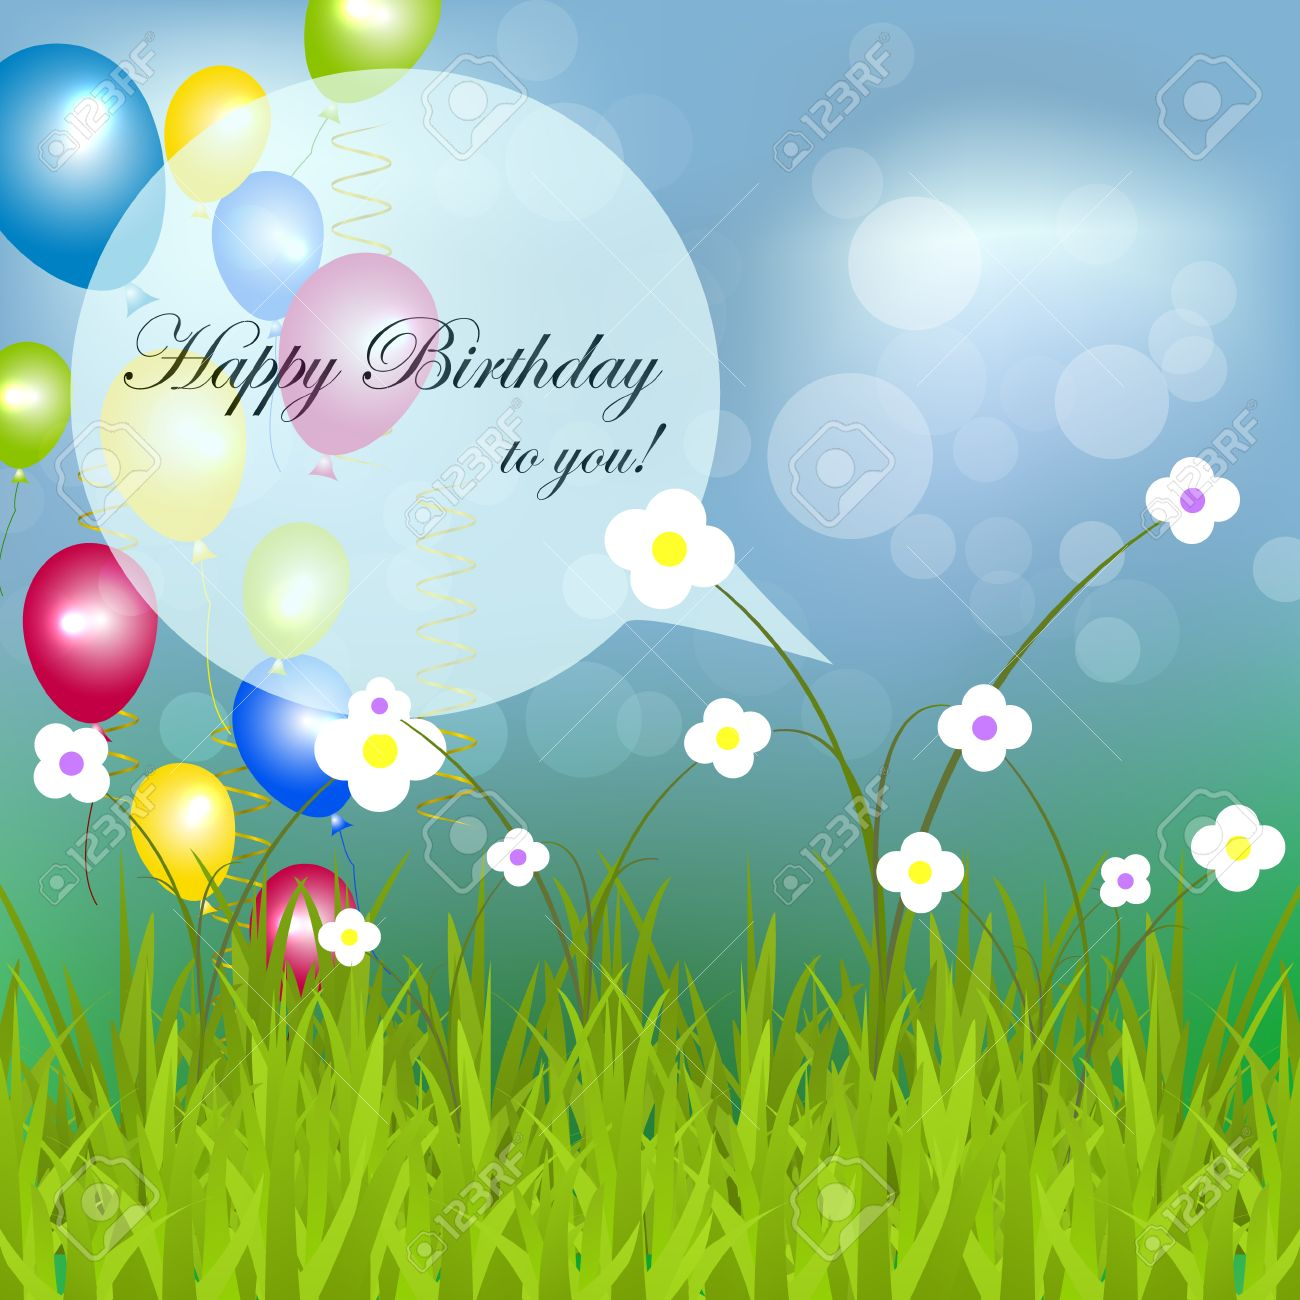 Happy Birthday Background With Flowers Bubbles Green Grass And Balloons Stock Vector